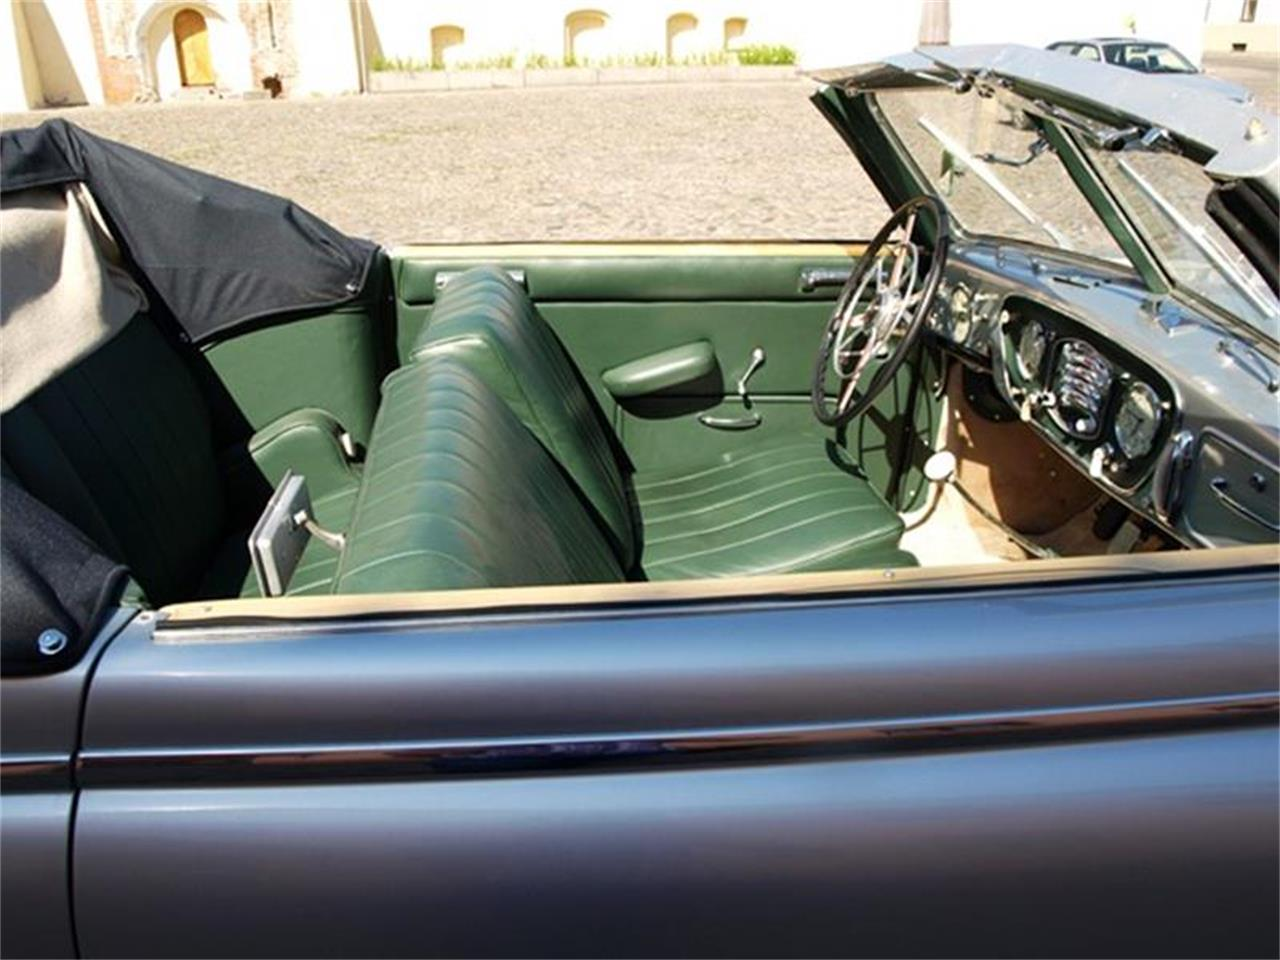 Large Picture of 1940 Mercedes-Benz 300 located in San Luis Obispo California Auction Vehicle Offered by Classic Car Guy - EAE5